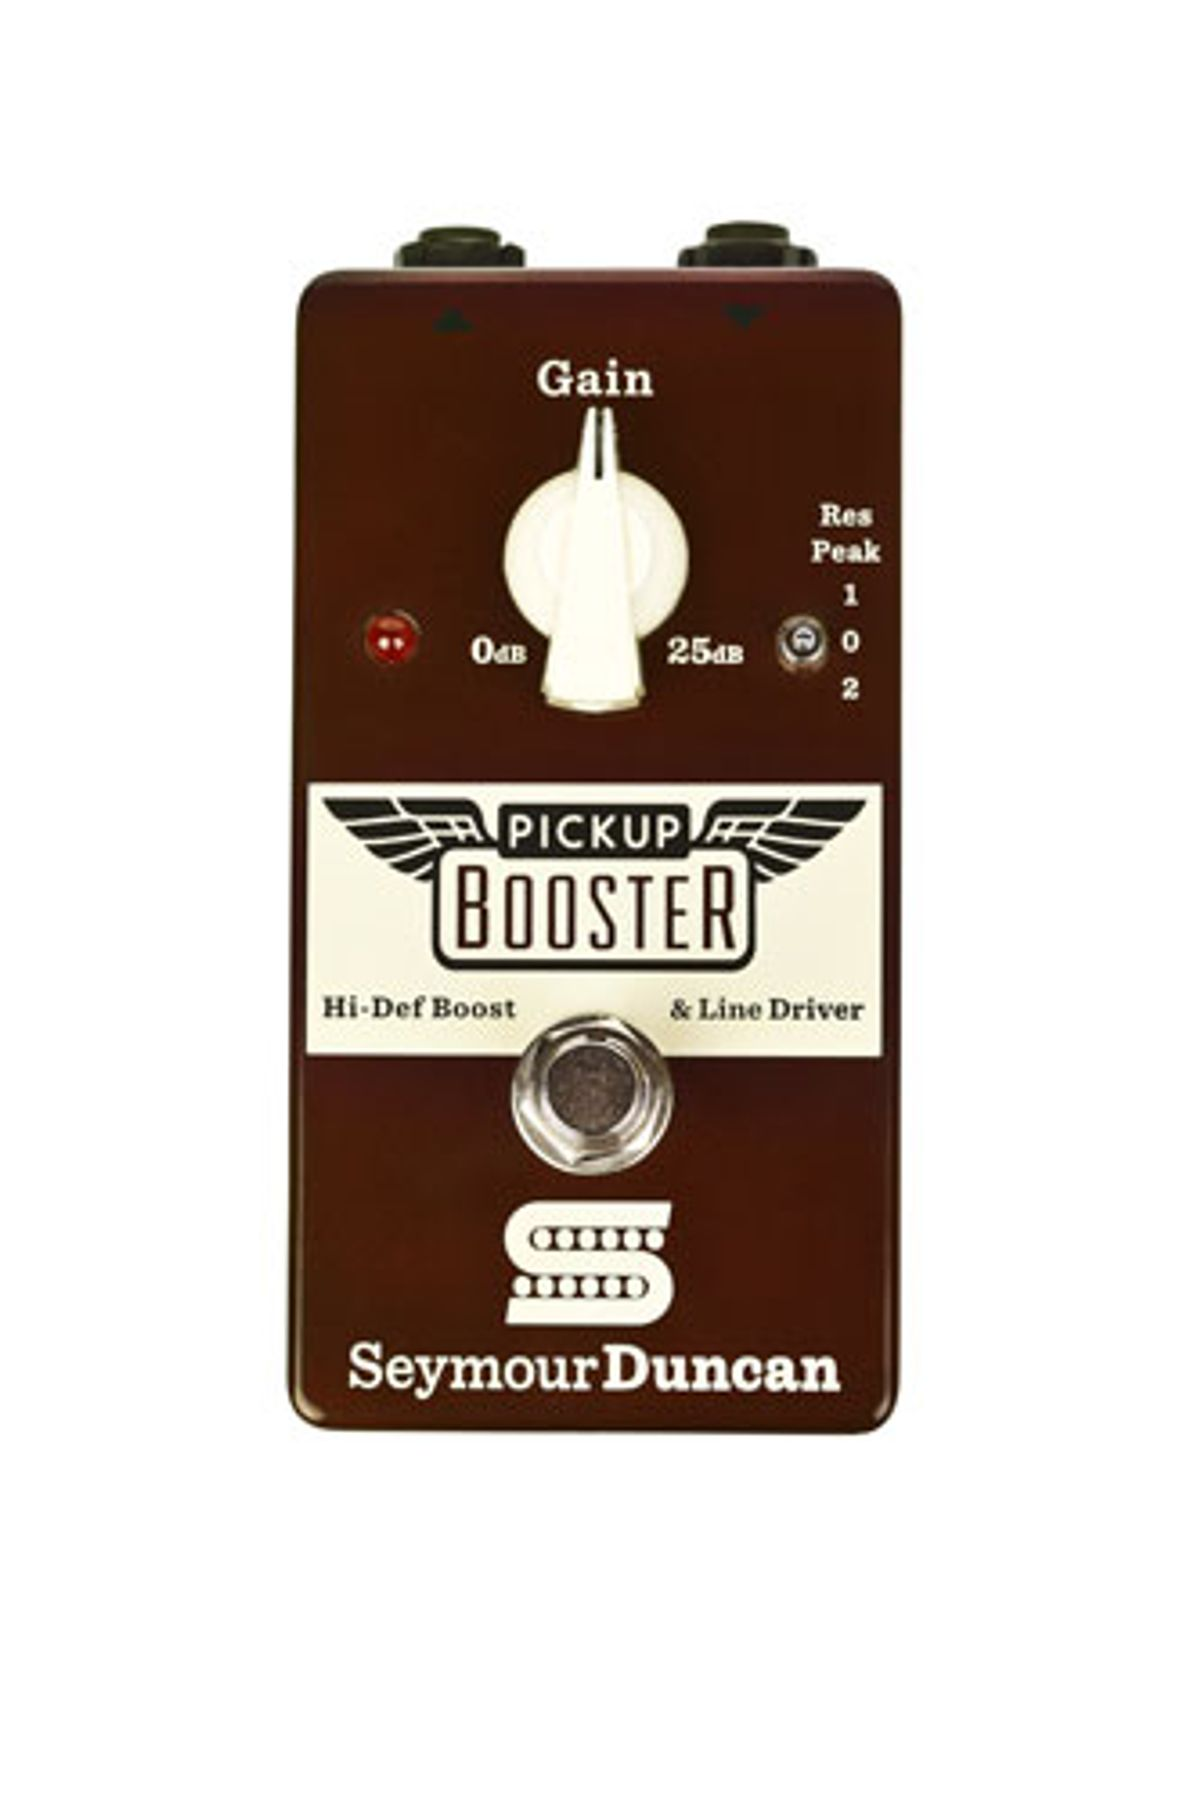 Seymour Duncan Announces the Pickup Booster